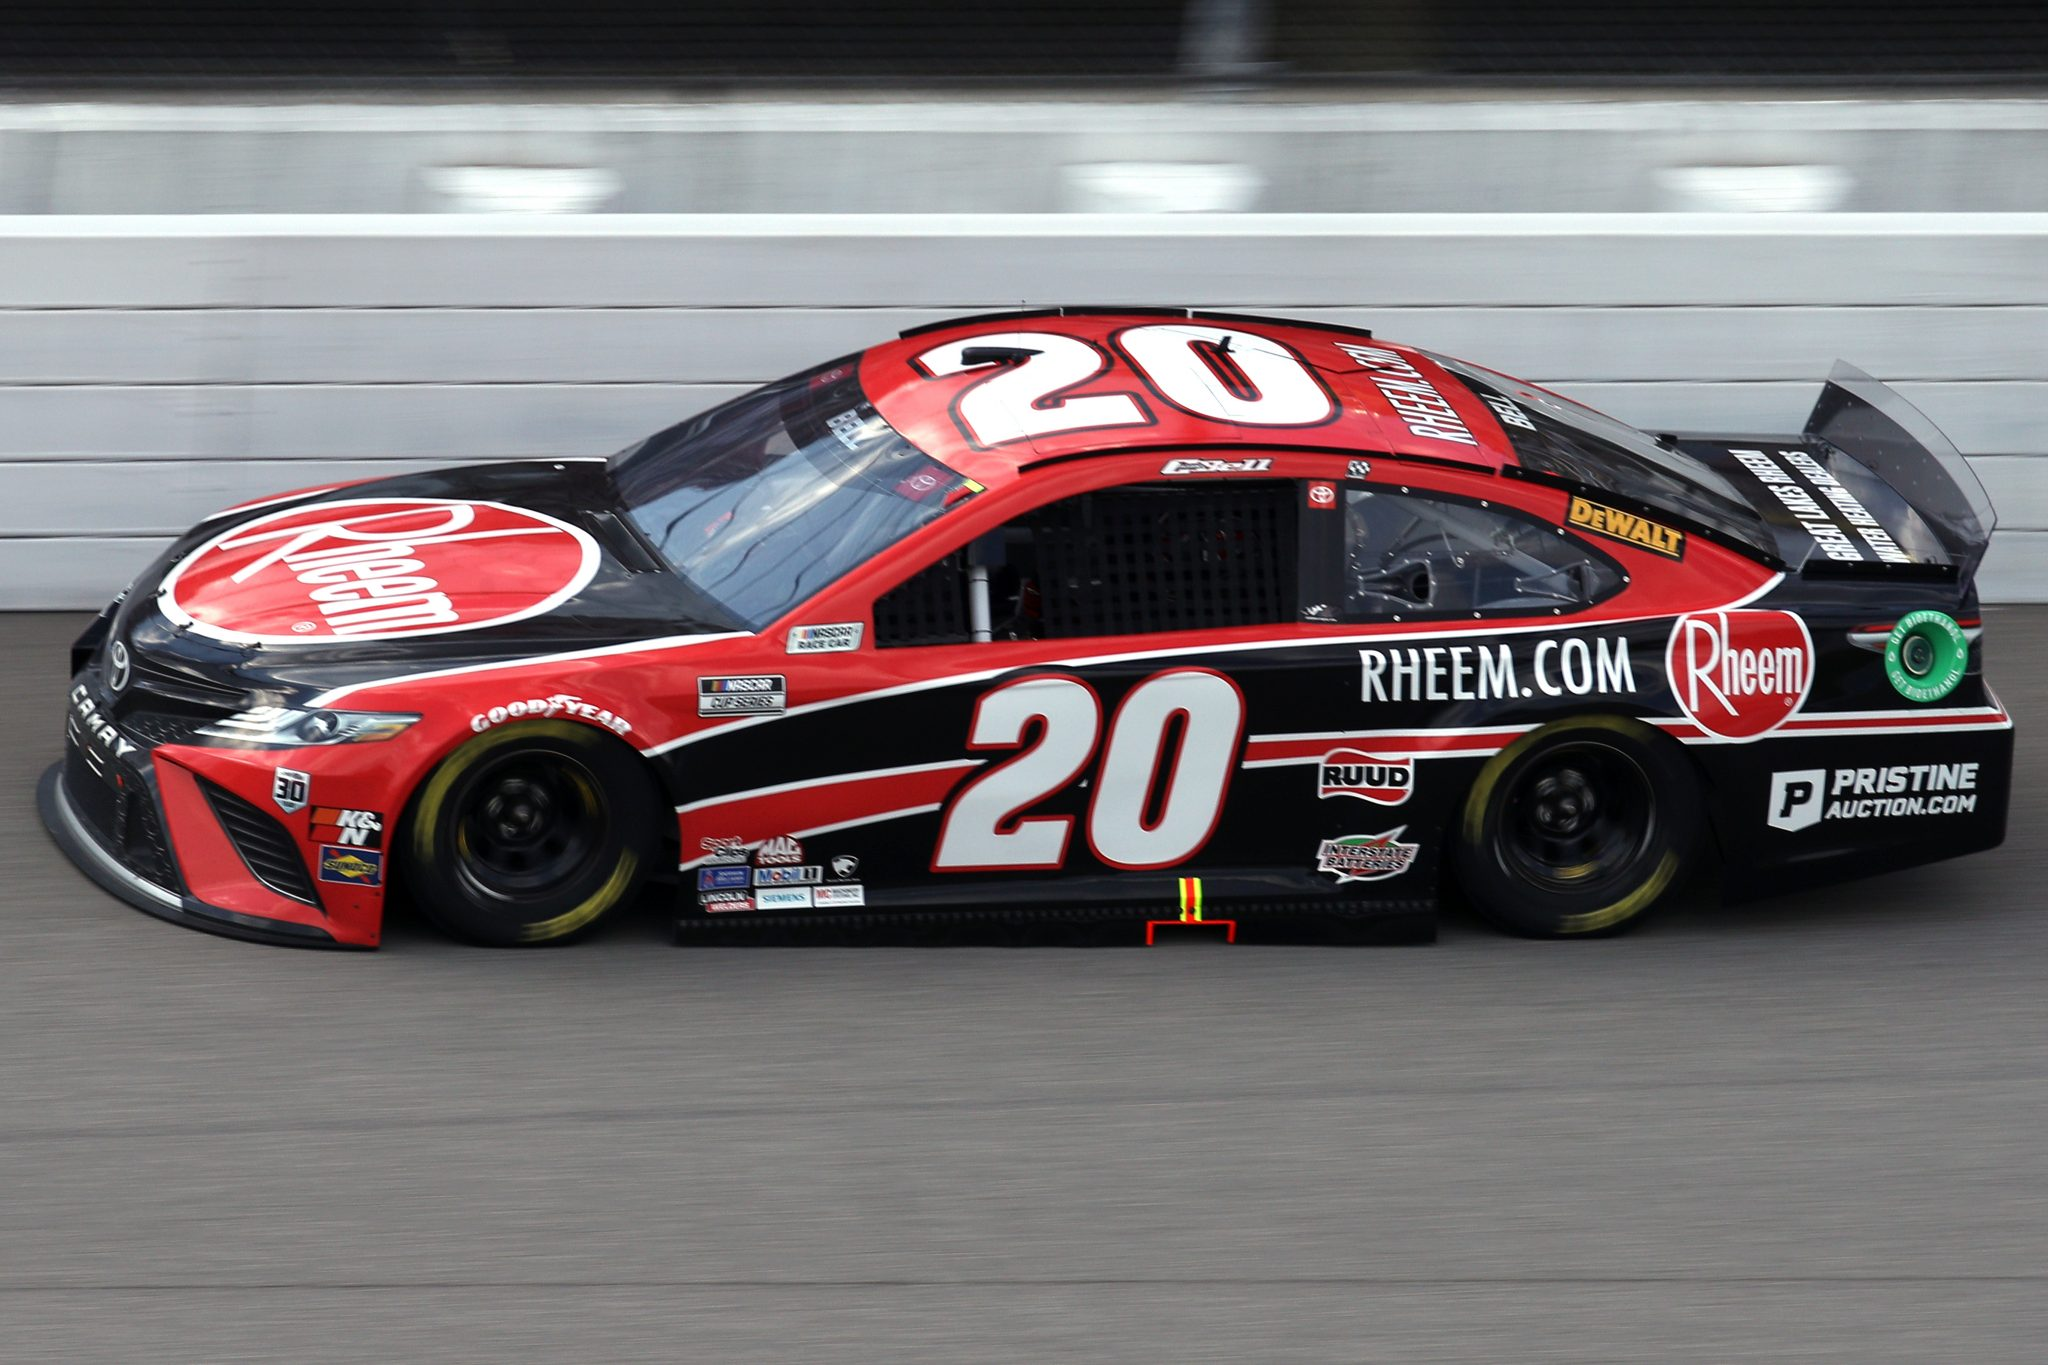 BROOKLYN, MICHIGAN - AUGUST 22: Christopher Bell, driver of the #20 Rheem Toyota, drives during the NASCAR Cup Series FireKeepers Casino 400 at Michigan International Speedway on August 22, 2021 in Brooklyn, Michigan. (Photo by Sean Gardner/Getty Images) | Getty Images